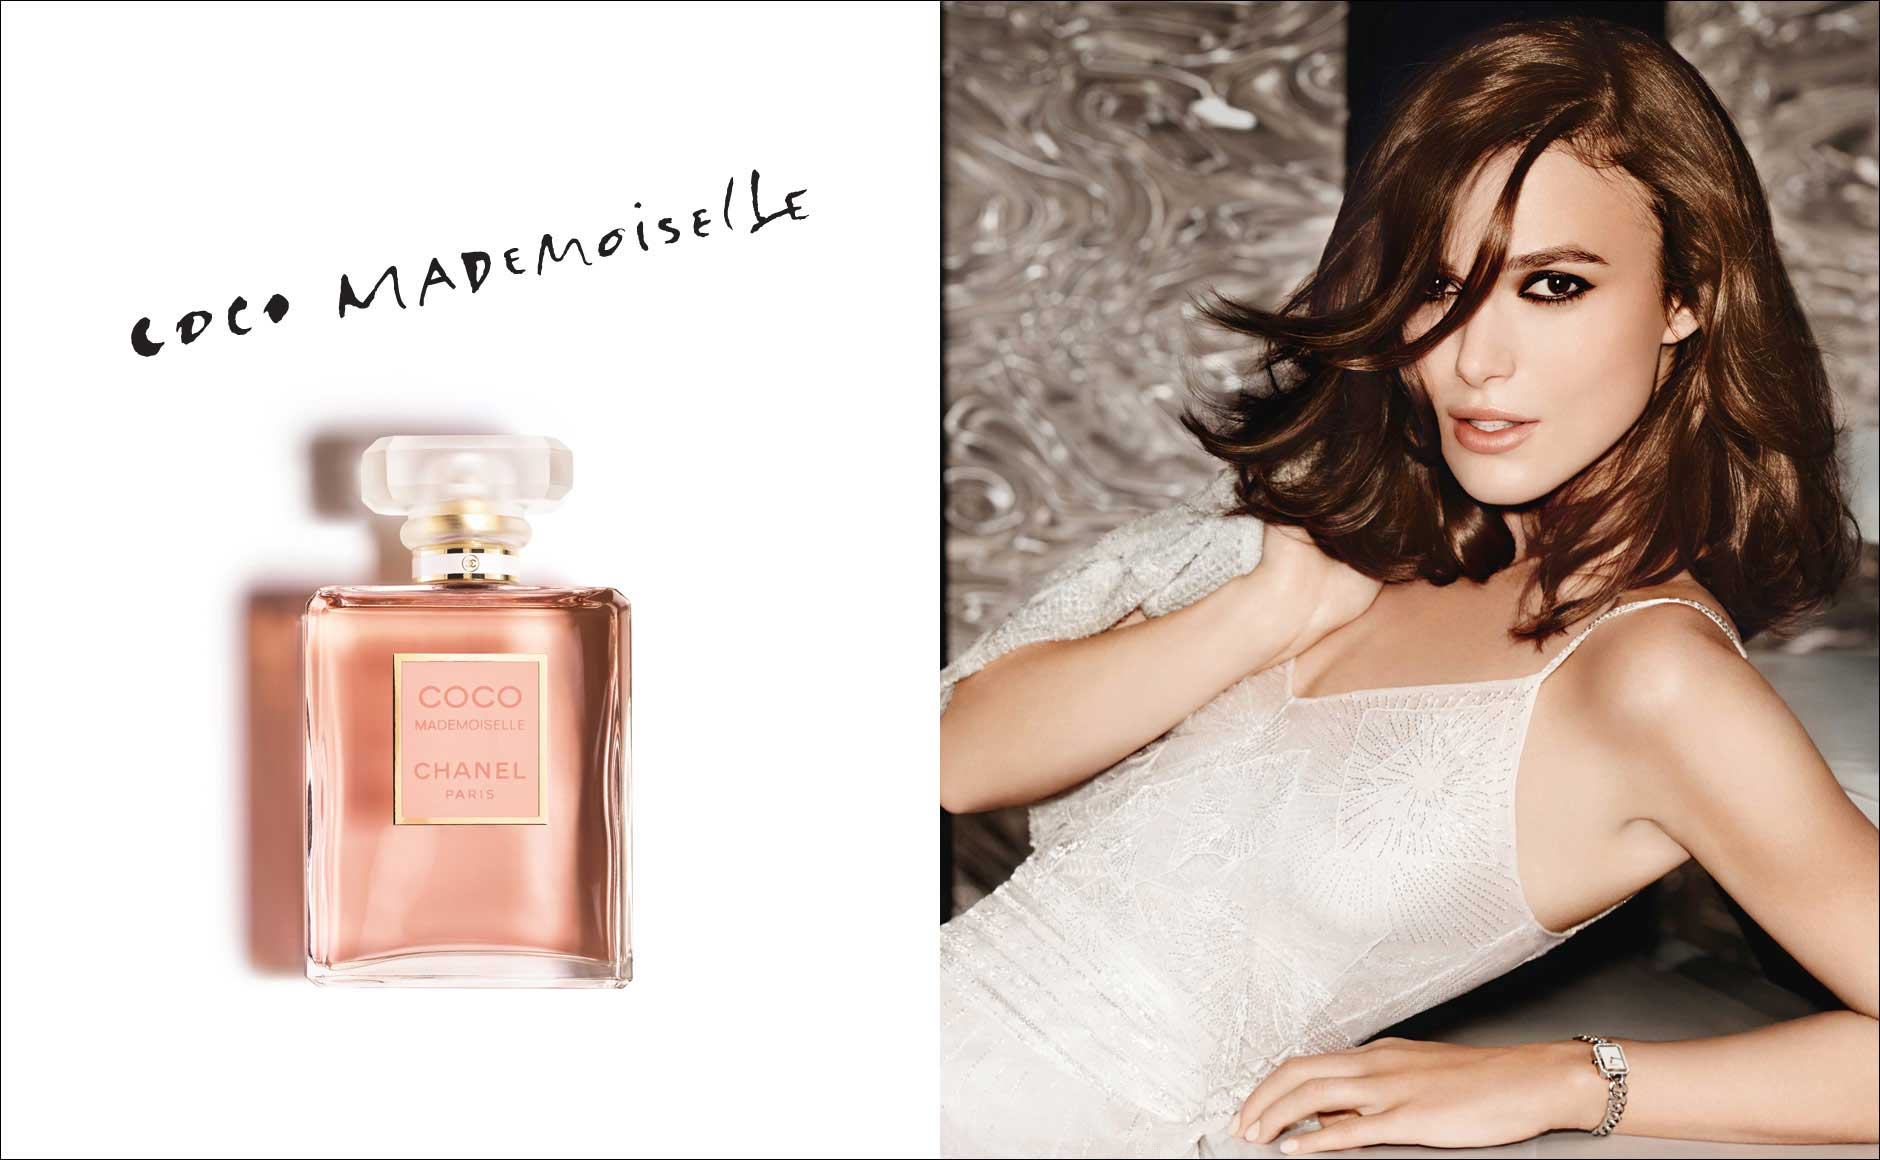 Chanel Women's Fragrance